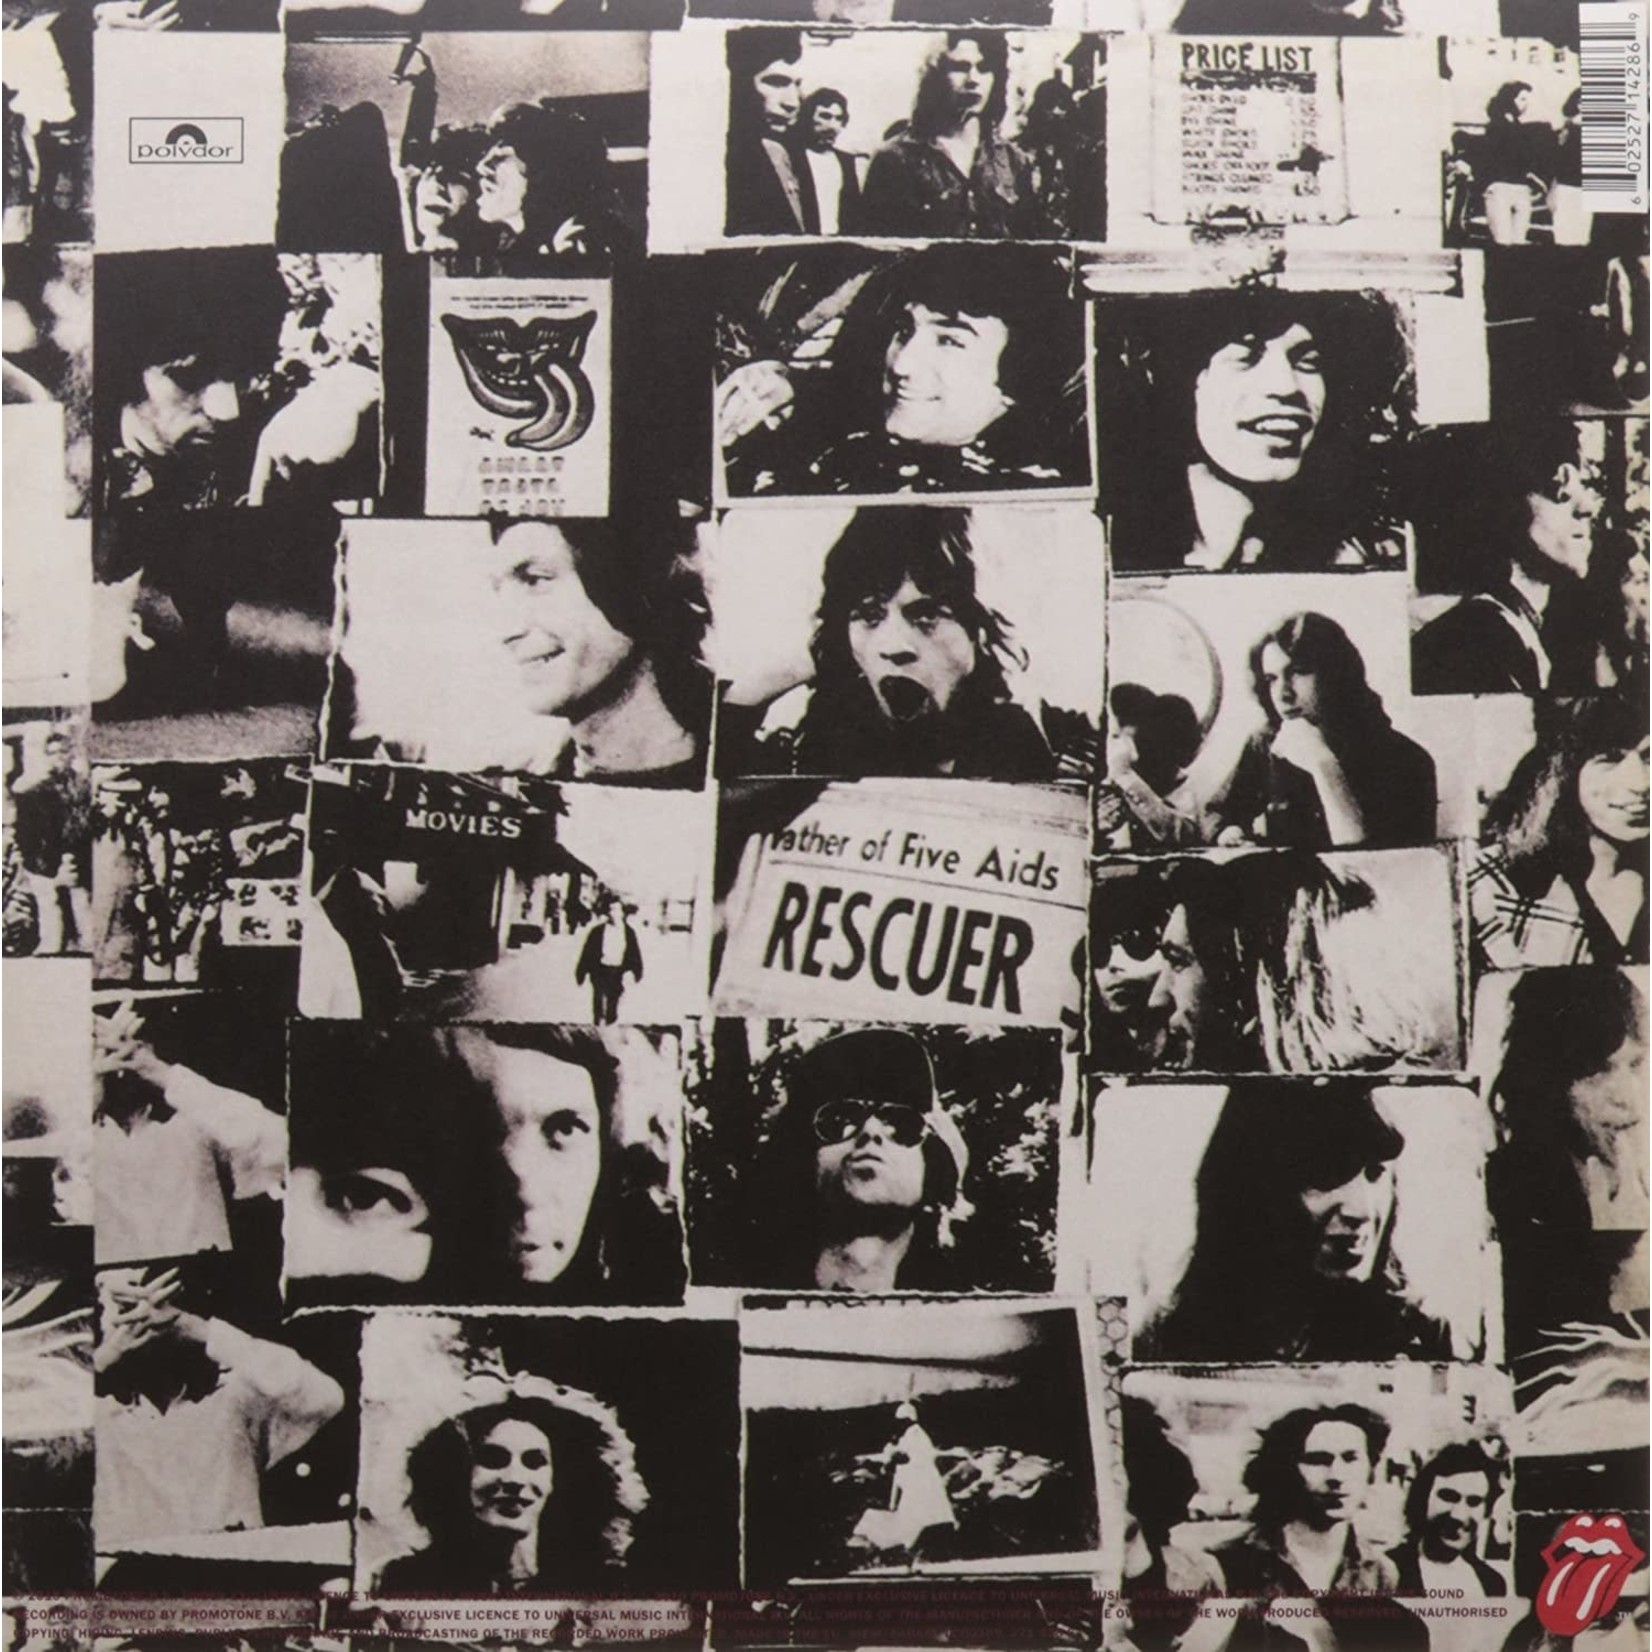 ROLLING STONES EXILE ON MAIN ST  2010 REMASTER